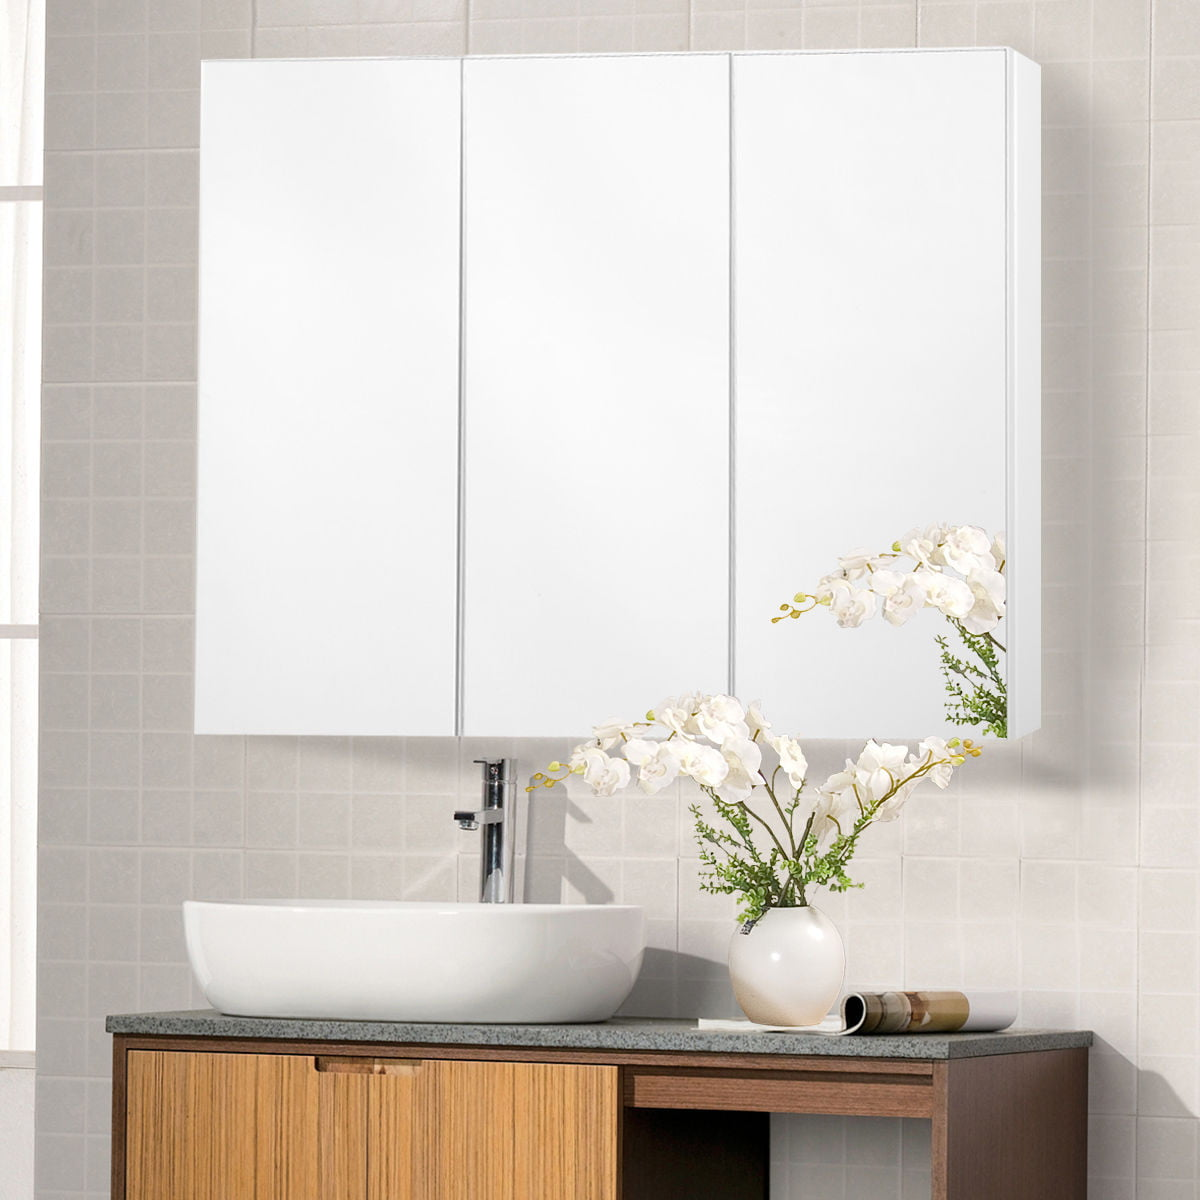 Costway 36'' Wide Wall Mount Mirrored Bathroom Medicine Cabinet Storage 3 Mirror Door by Costway